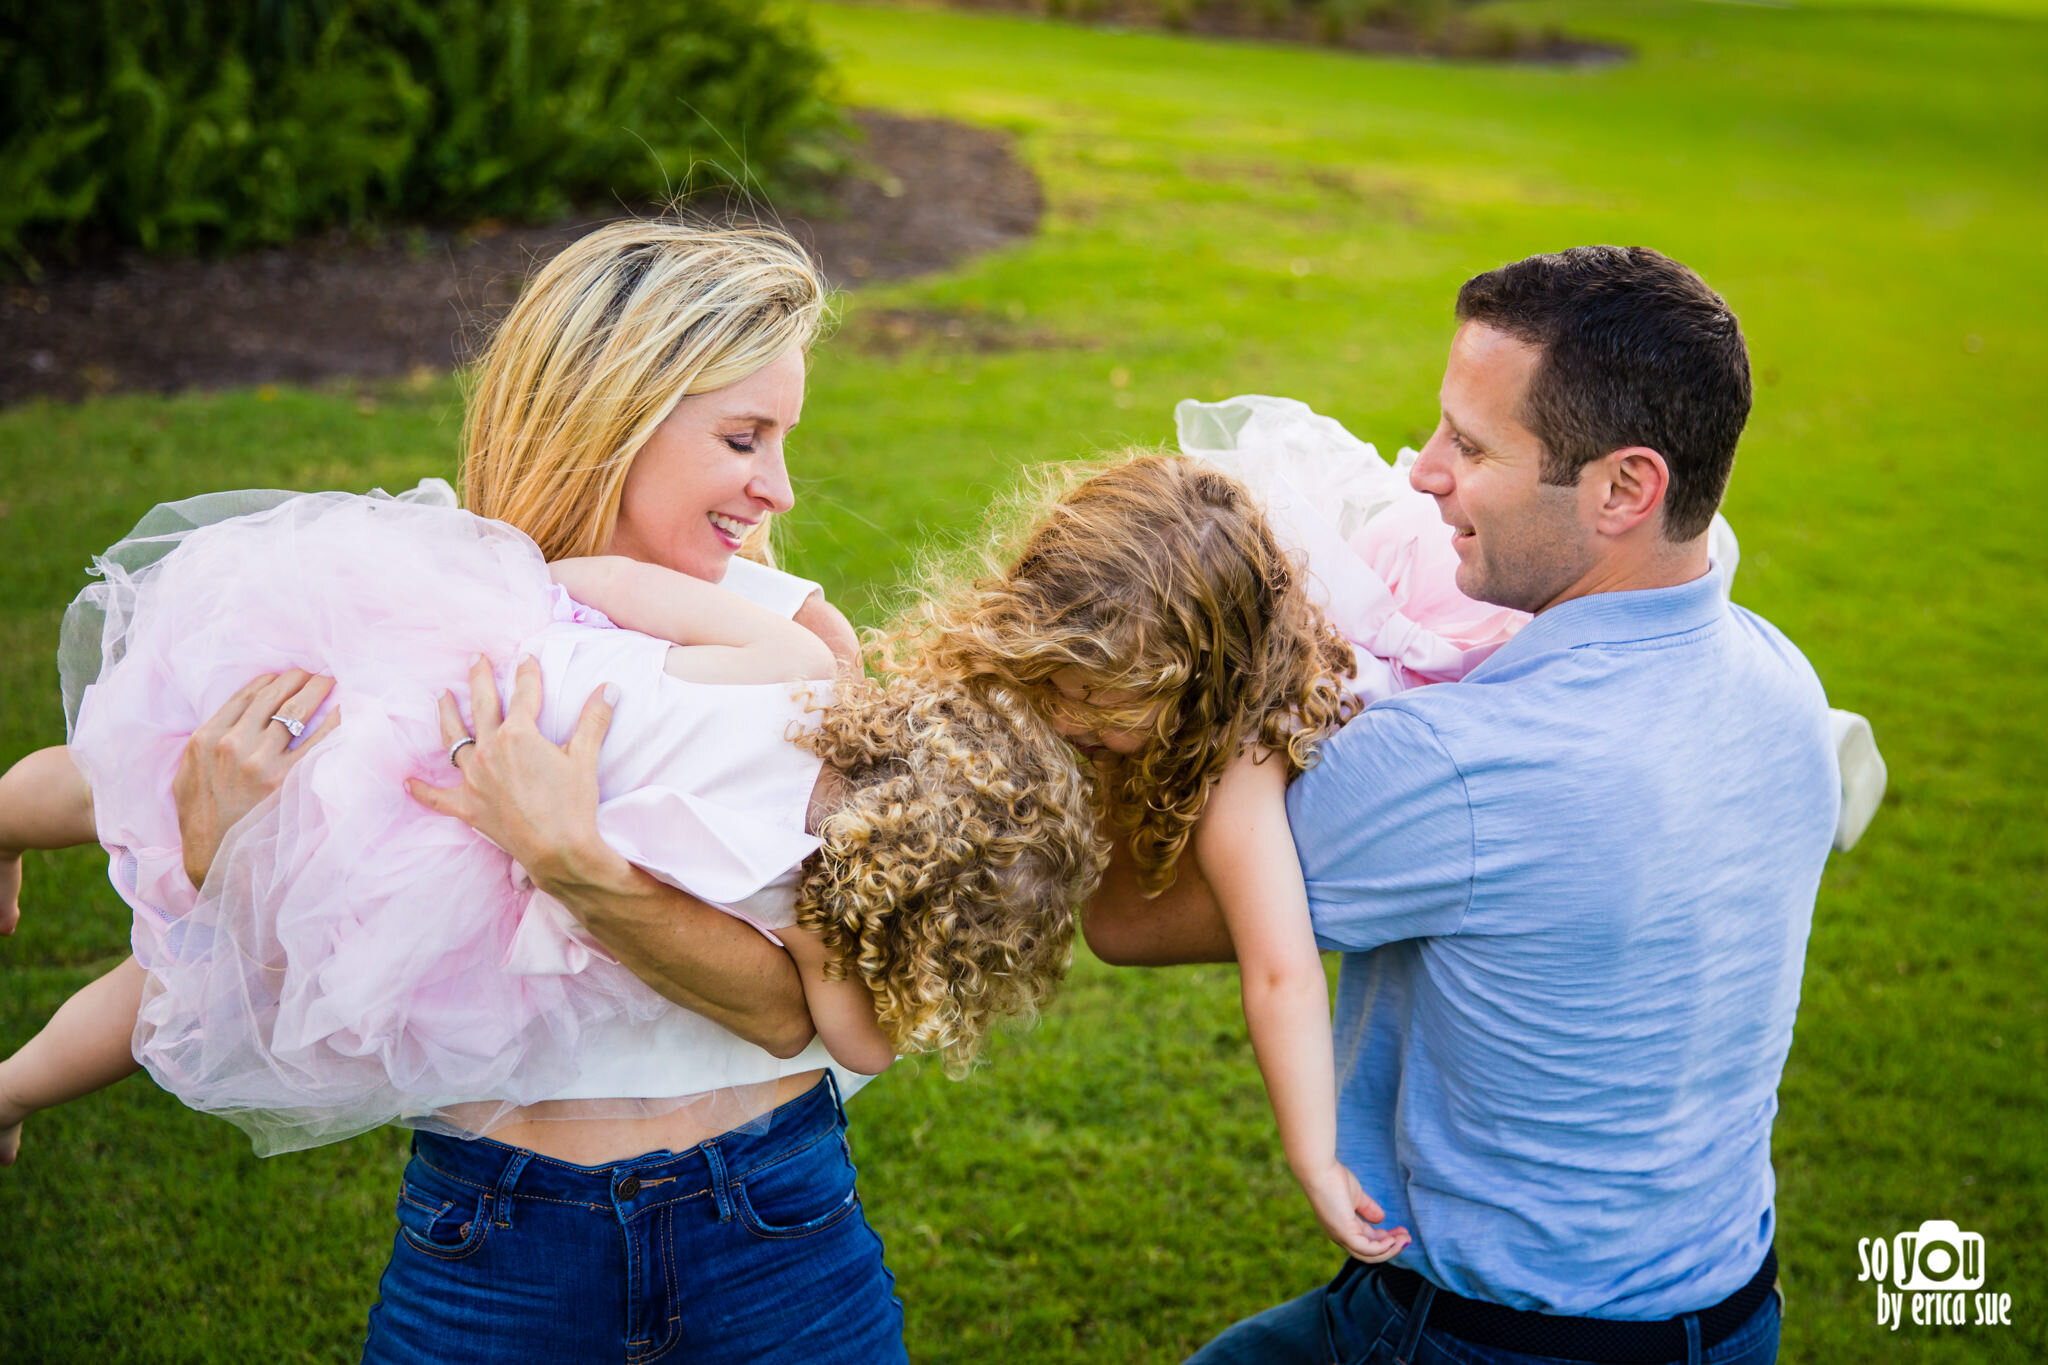 so-you-by-erica-sue-south-florida-extended-family-lifestyle-photo-session-2431.JPG